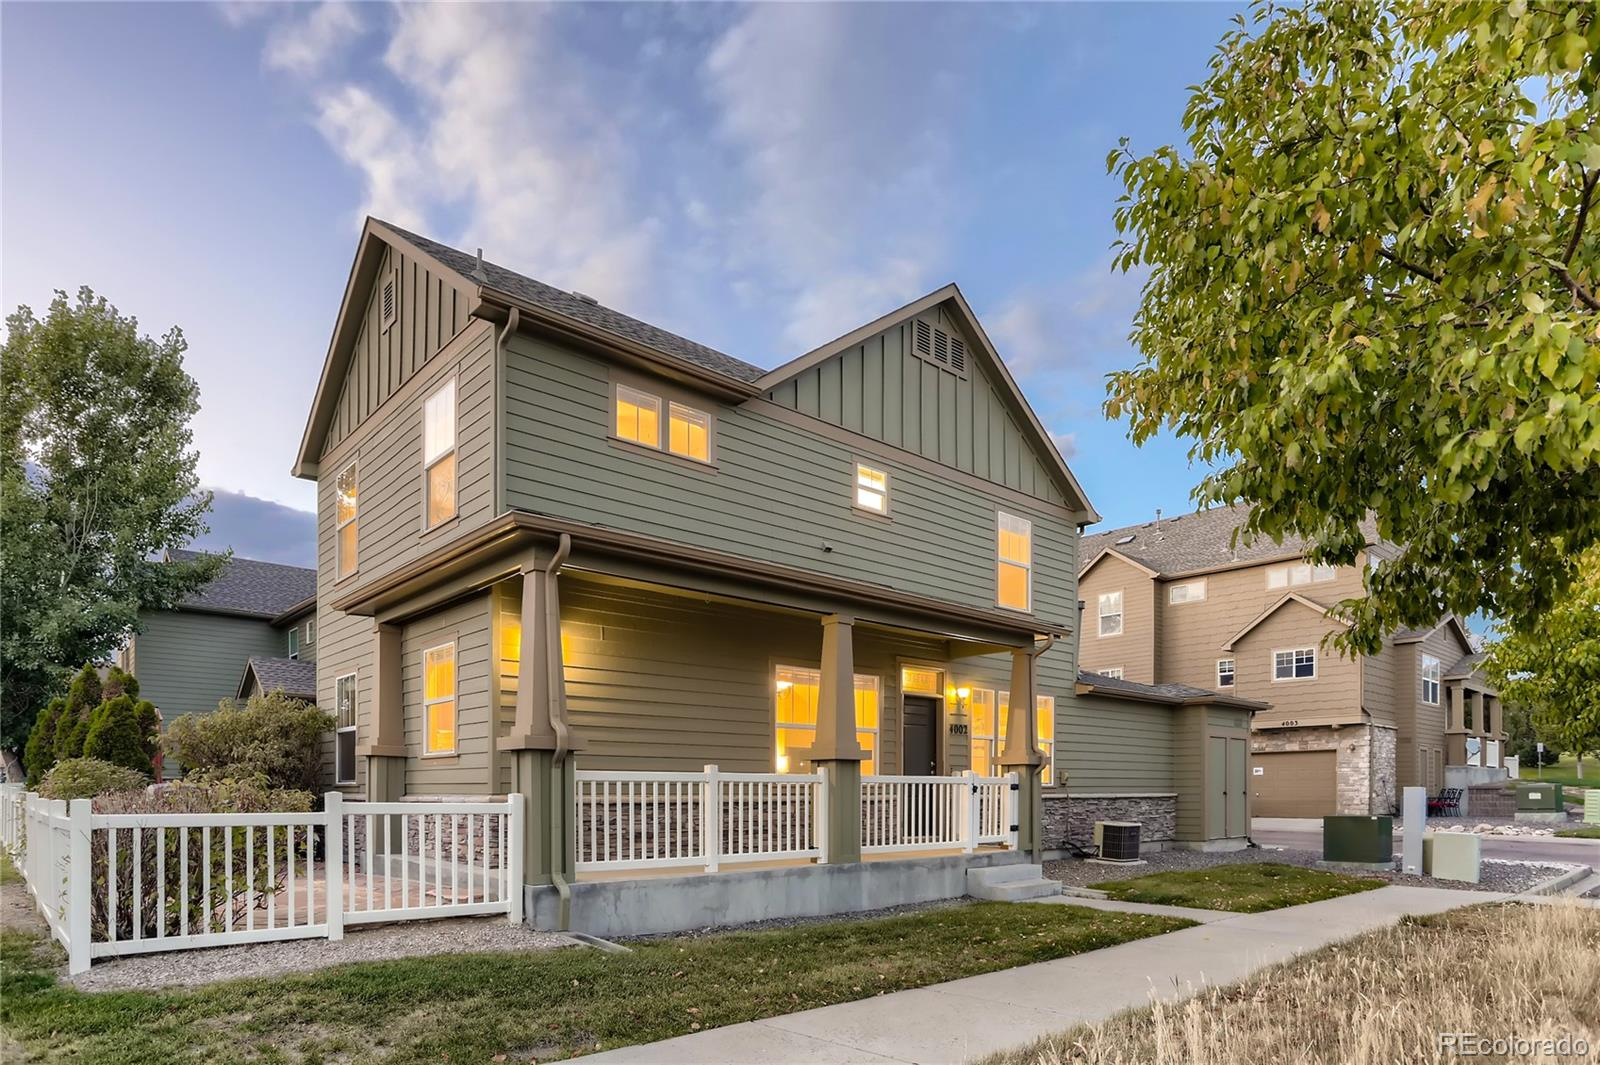 This lovely end unit in the desirable Morgan's Run community of The Meadows exudes an abundance of warmth and natural light. The unit overlooks open space from and is immediately adjacent to the walking trails of the community. Enjoy lovely views from your covered front porch or flagstone patio, both are which are surprisingly private and secluded for a condo community. The outdoor area is completely fenced and enclosed, perfect for furry family members. This home features brand new carpet, 3 bedrooms and 2 full bathrooms. The main level includes the kitchen, dining room and living room. This level also includes a bedroom and full bathroom. Enjoy vaulted ceilings as you walk up the stairs to the 2nd level. The 2nd floor contains the remaining 2 bedrooms along with another full bathroom - uniquely configured with 2 separate vanity/sink areas. You will also find the laundry room on this level (washer/dryer included).  Don't miss this home's convenient, attached 2 car garage. Enjoy all of the amazing Meadows amenities and conveniences including parks, baseball and soccer fields, volleyball courts, acres of trails, pools, clubhouses, and more included in the HOA for this home.